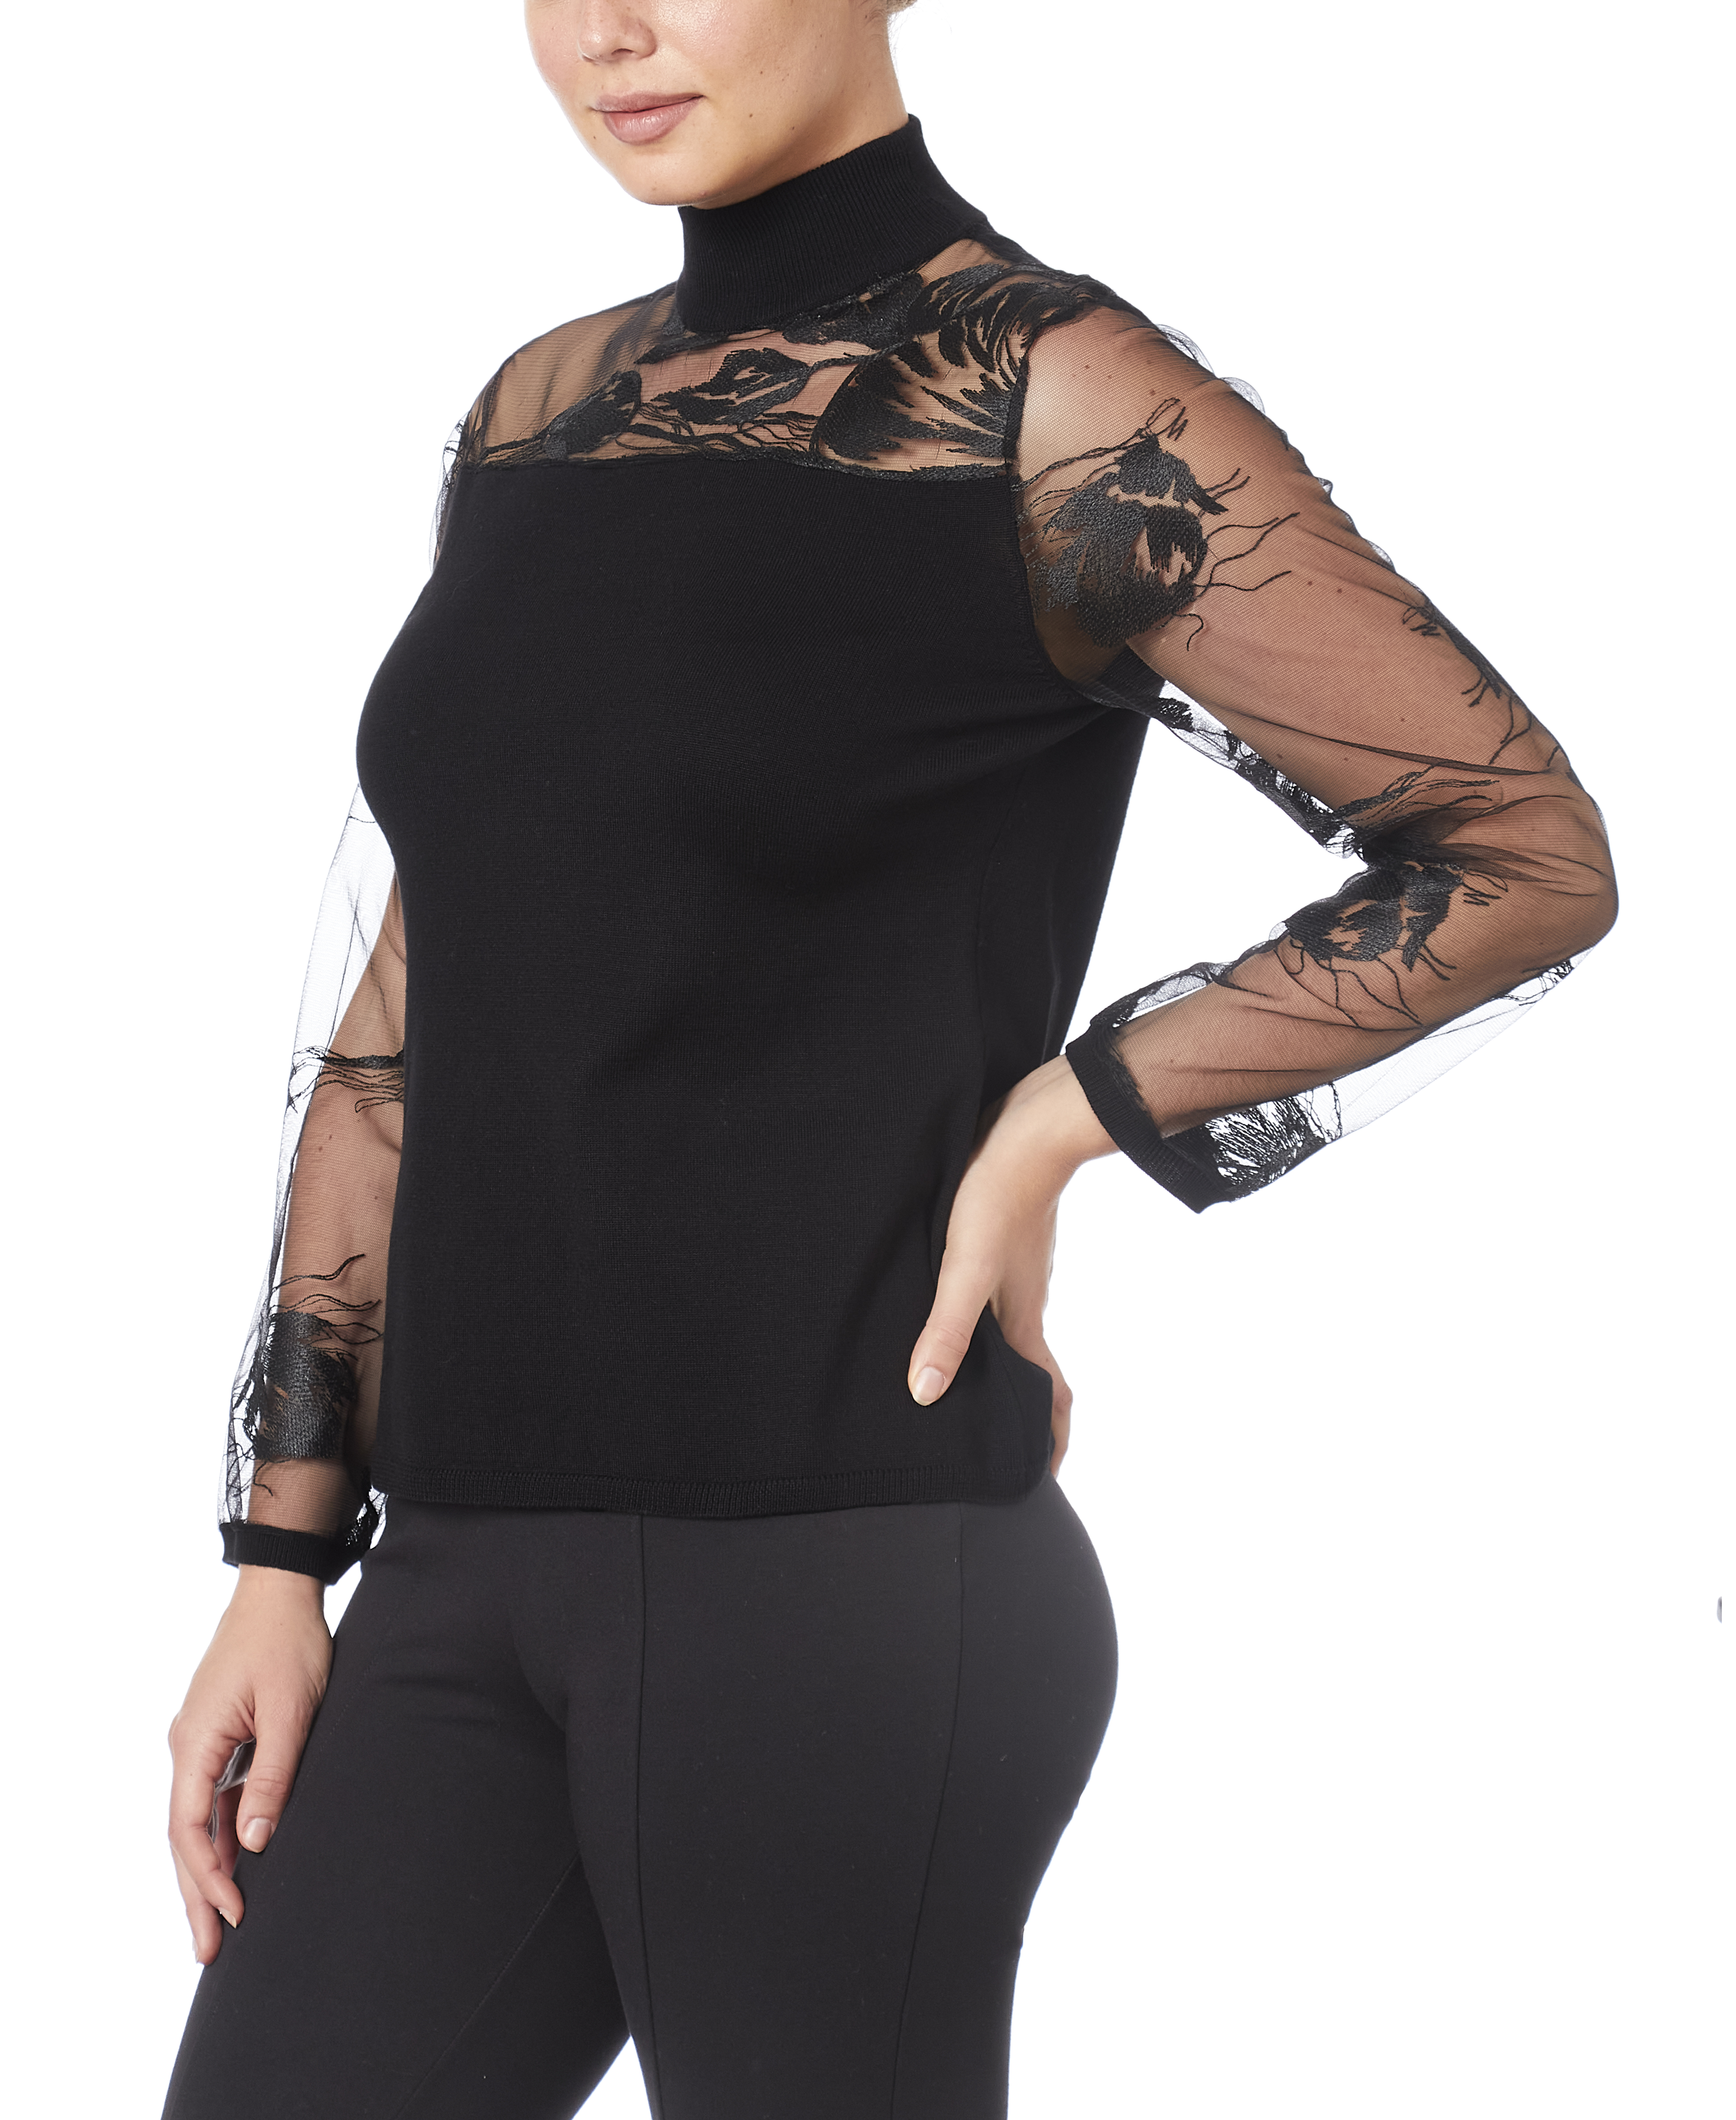 Mixed-Media Illusion Sweater in Black